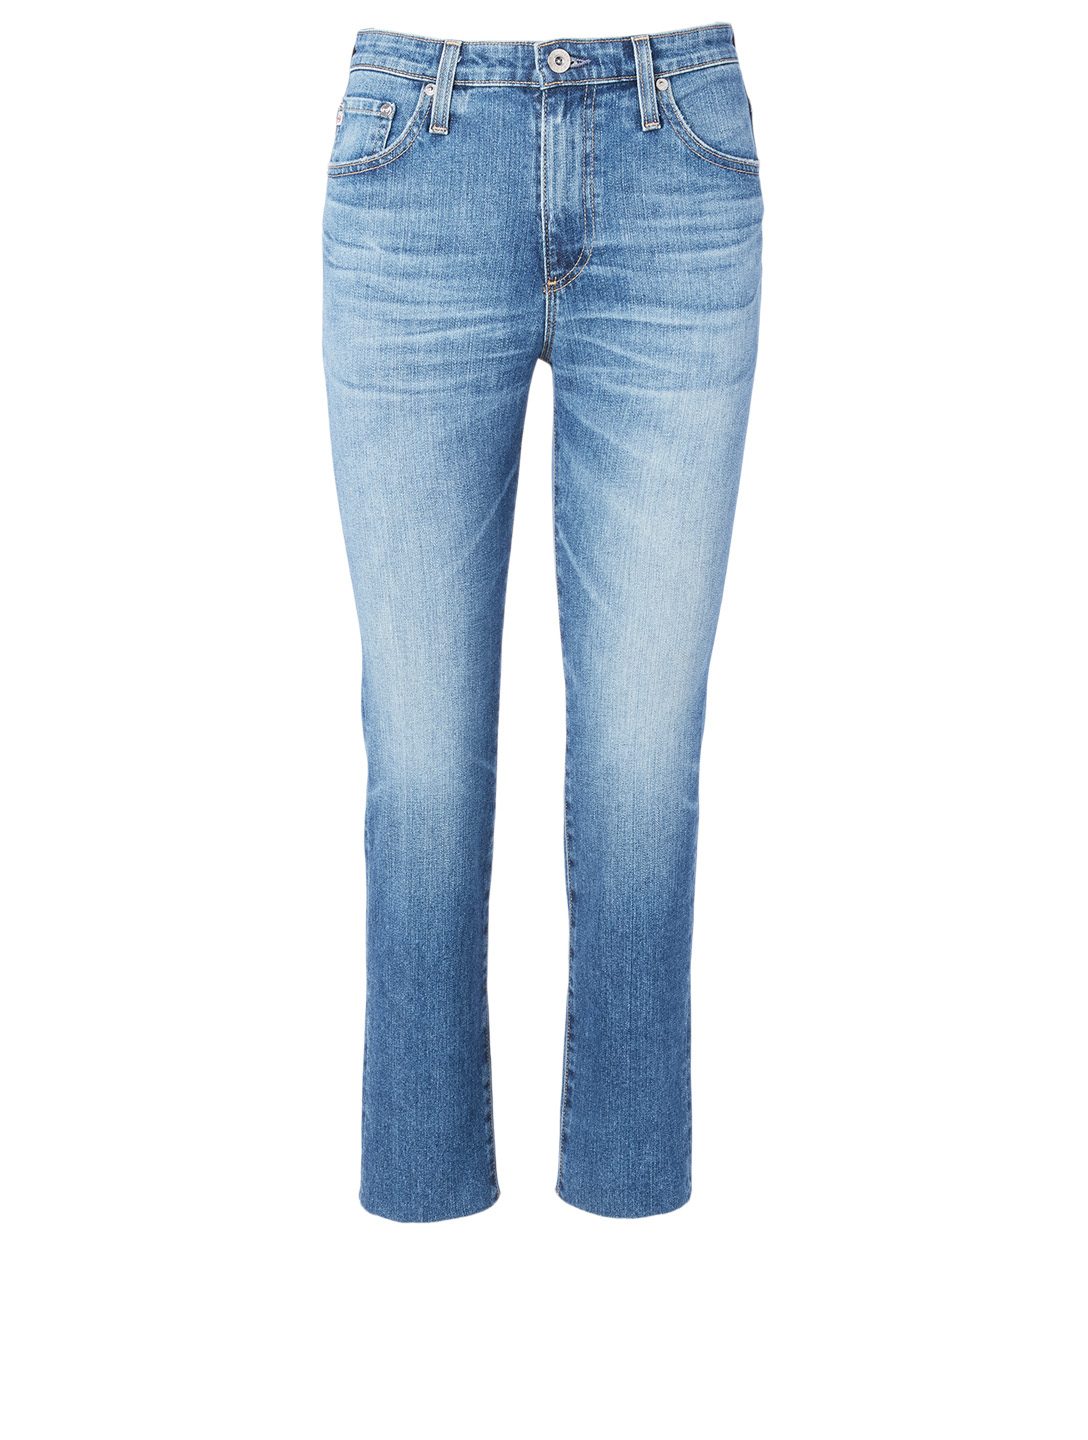 AG Isabelle High-Waisted Straight Crop Jeans Women's Blue